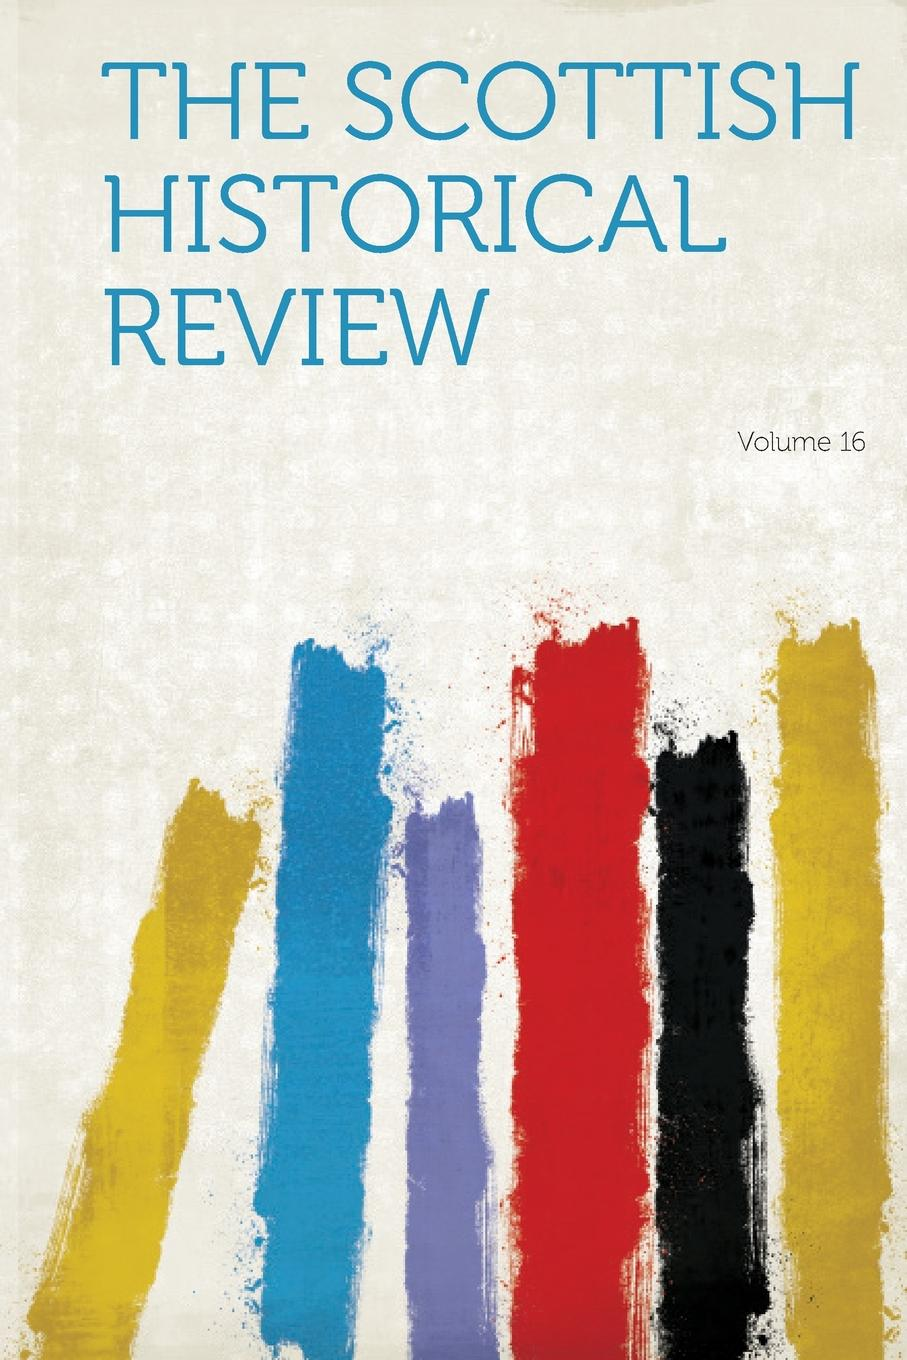 The Scottish Historical Review Volume 16